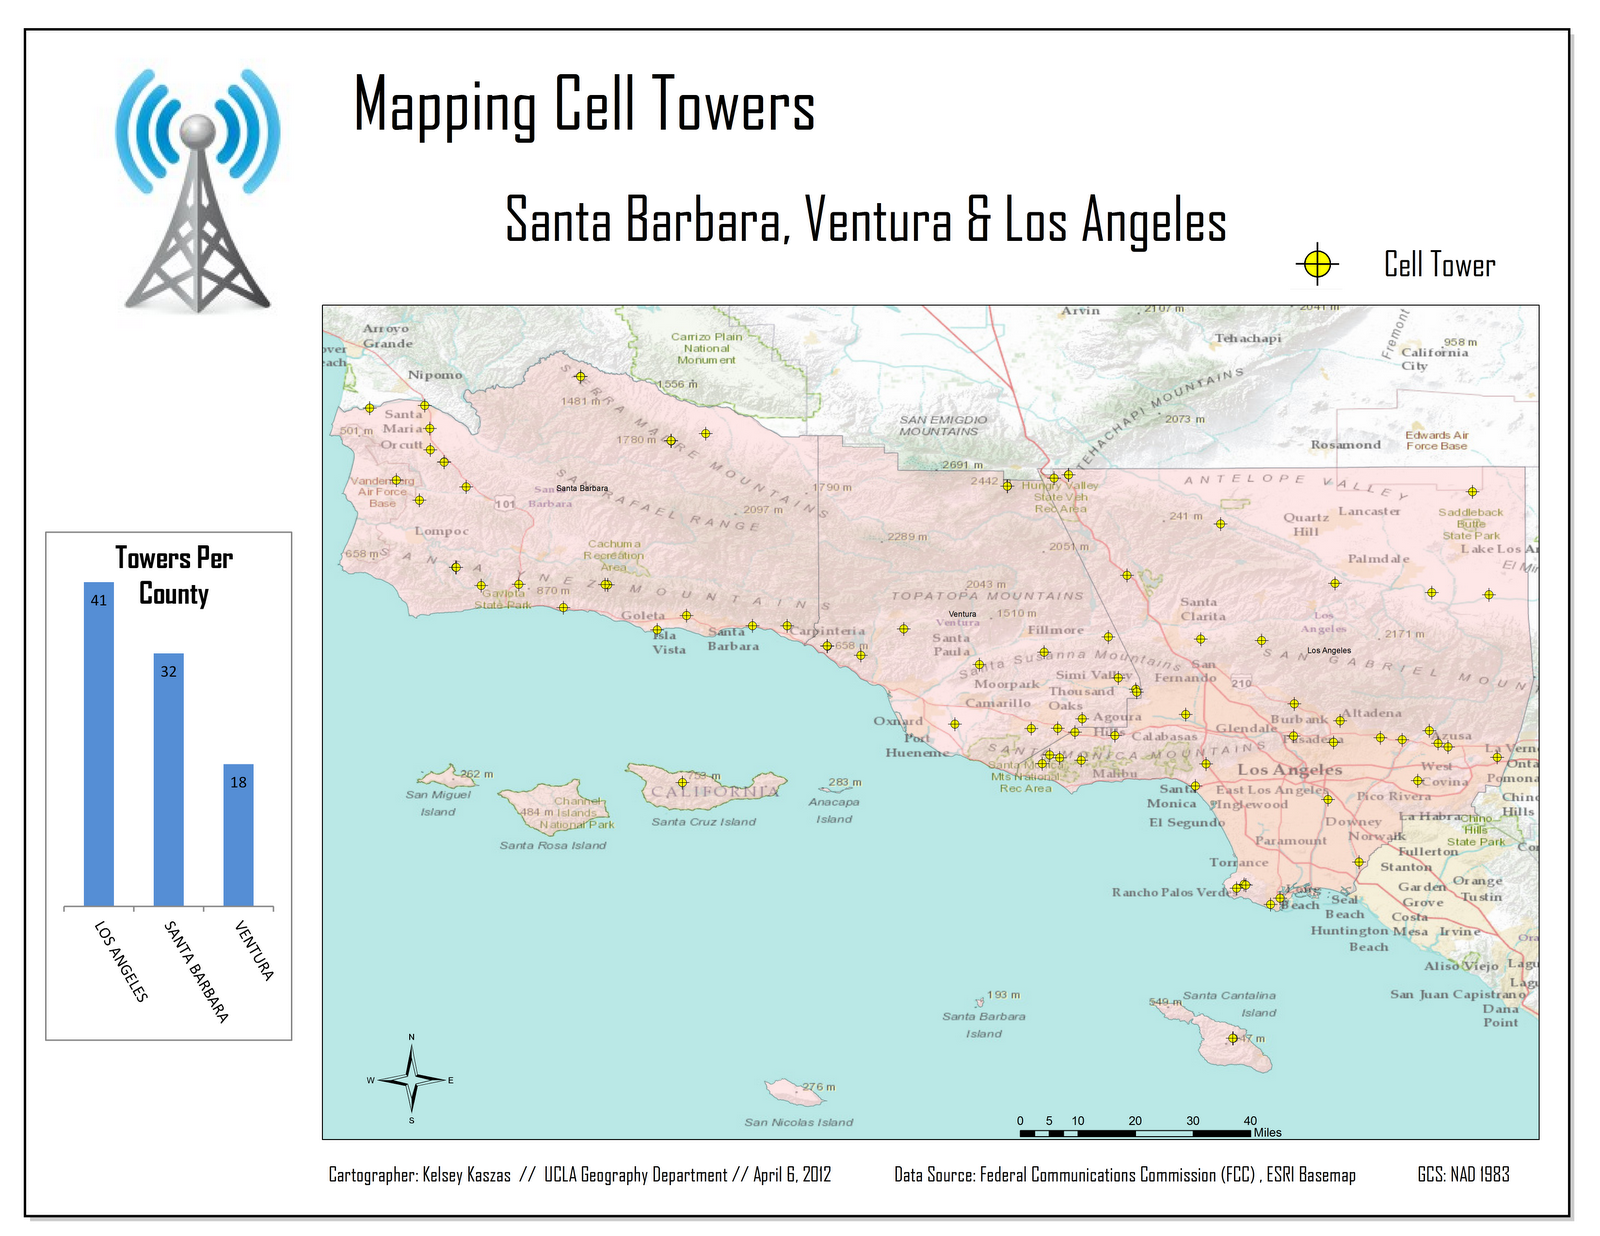 cellular coverage in los angeles county